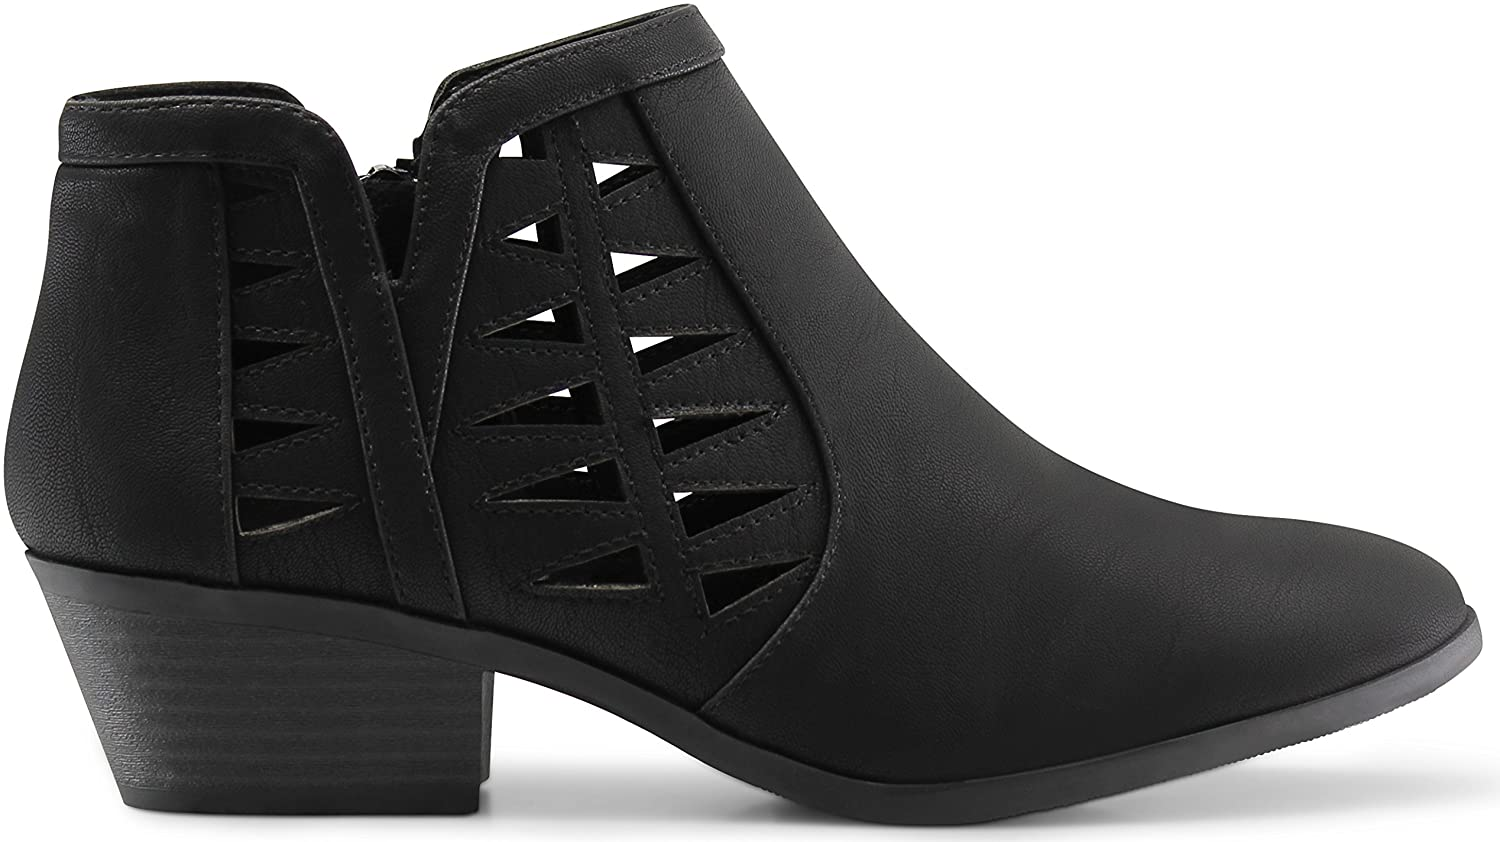 Marco Republic Oslo Womens Perforated Cutout Chunky Block Stacked Heels Ankle Booties Boots